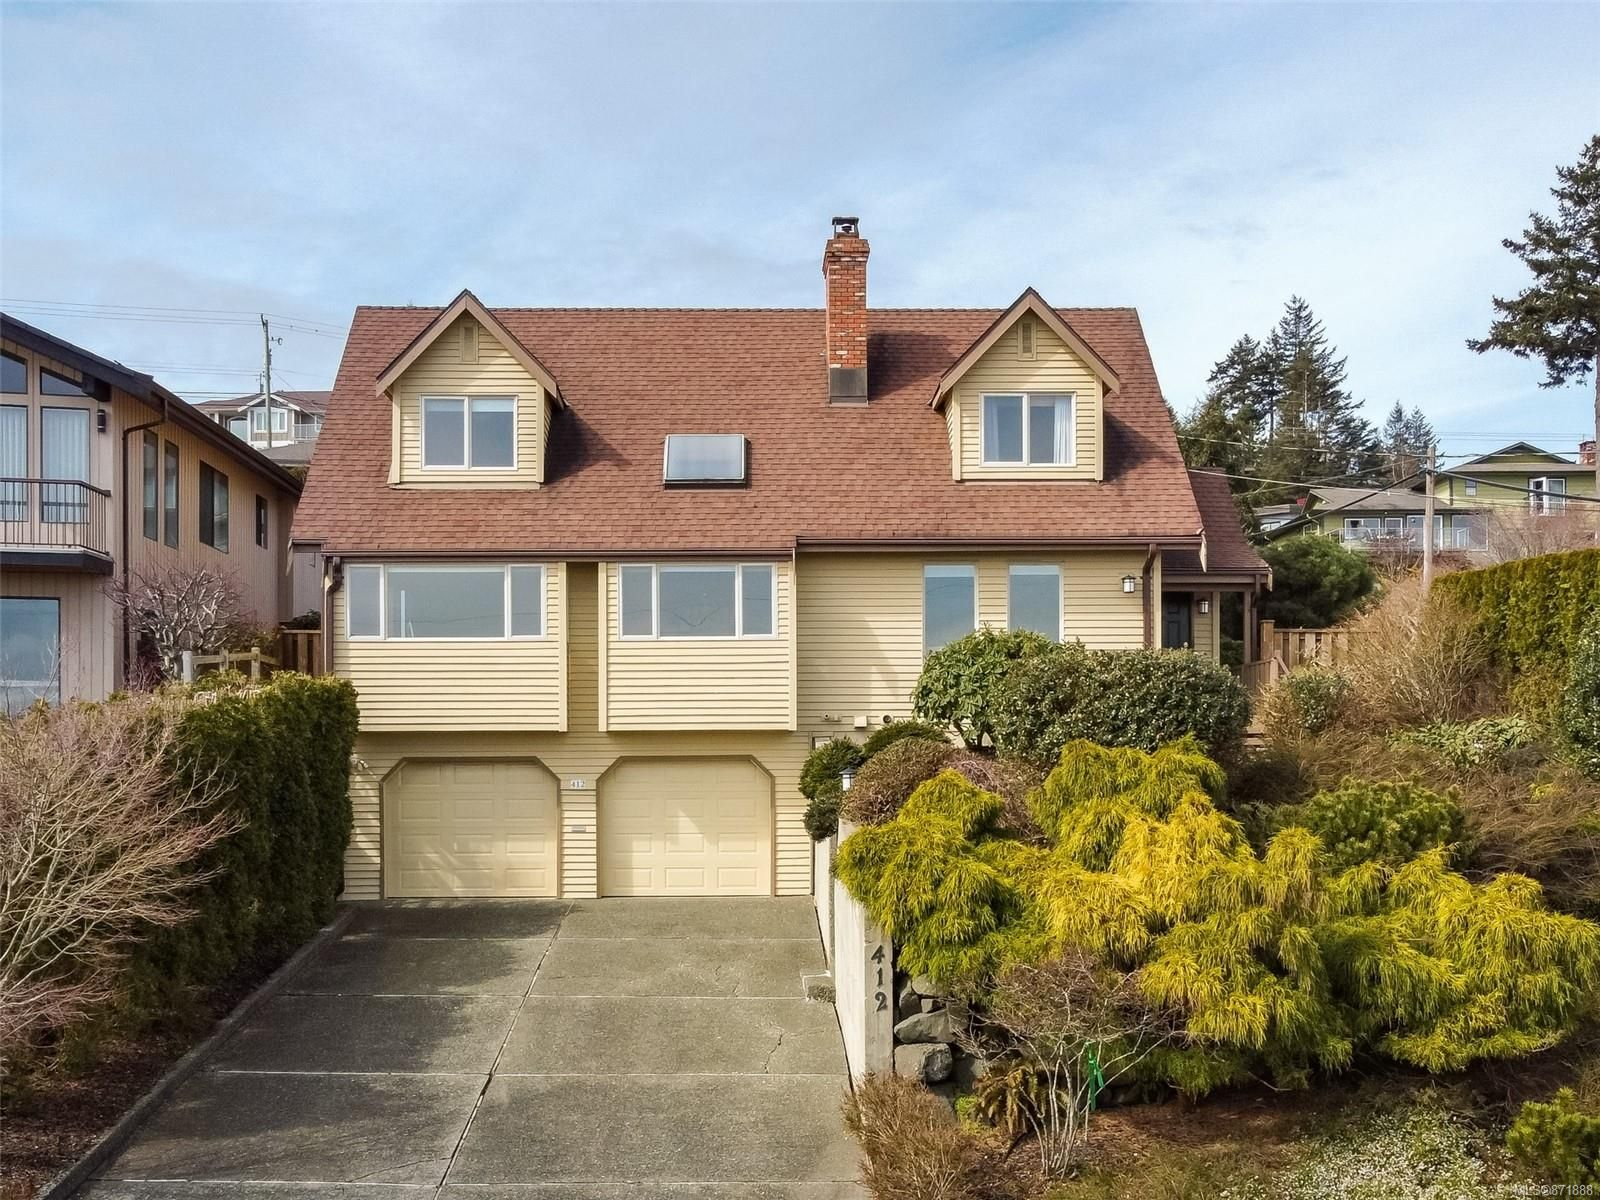 Main Photo: 412 Carnegie St in : CR Campbell River Central House for sale (Campbell River)  : MLS®# 871888